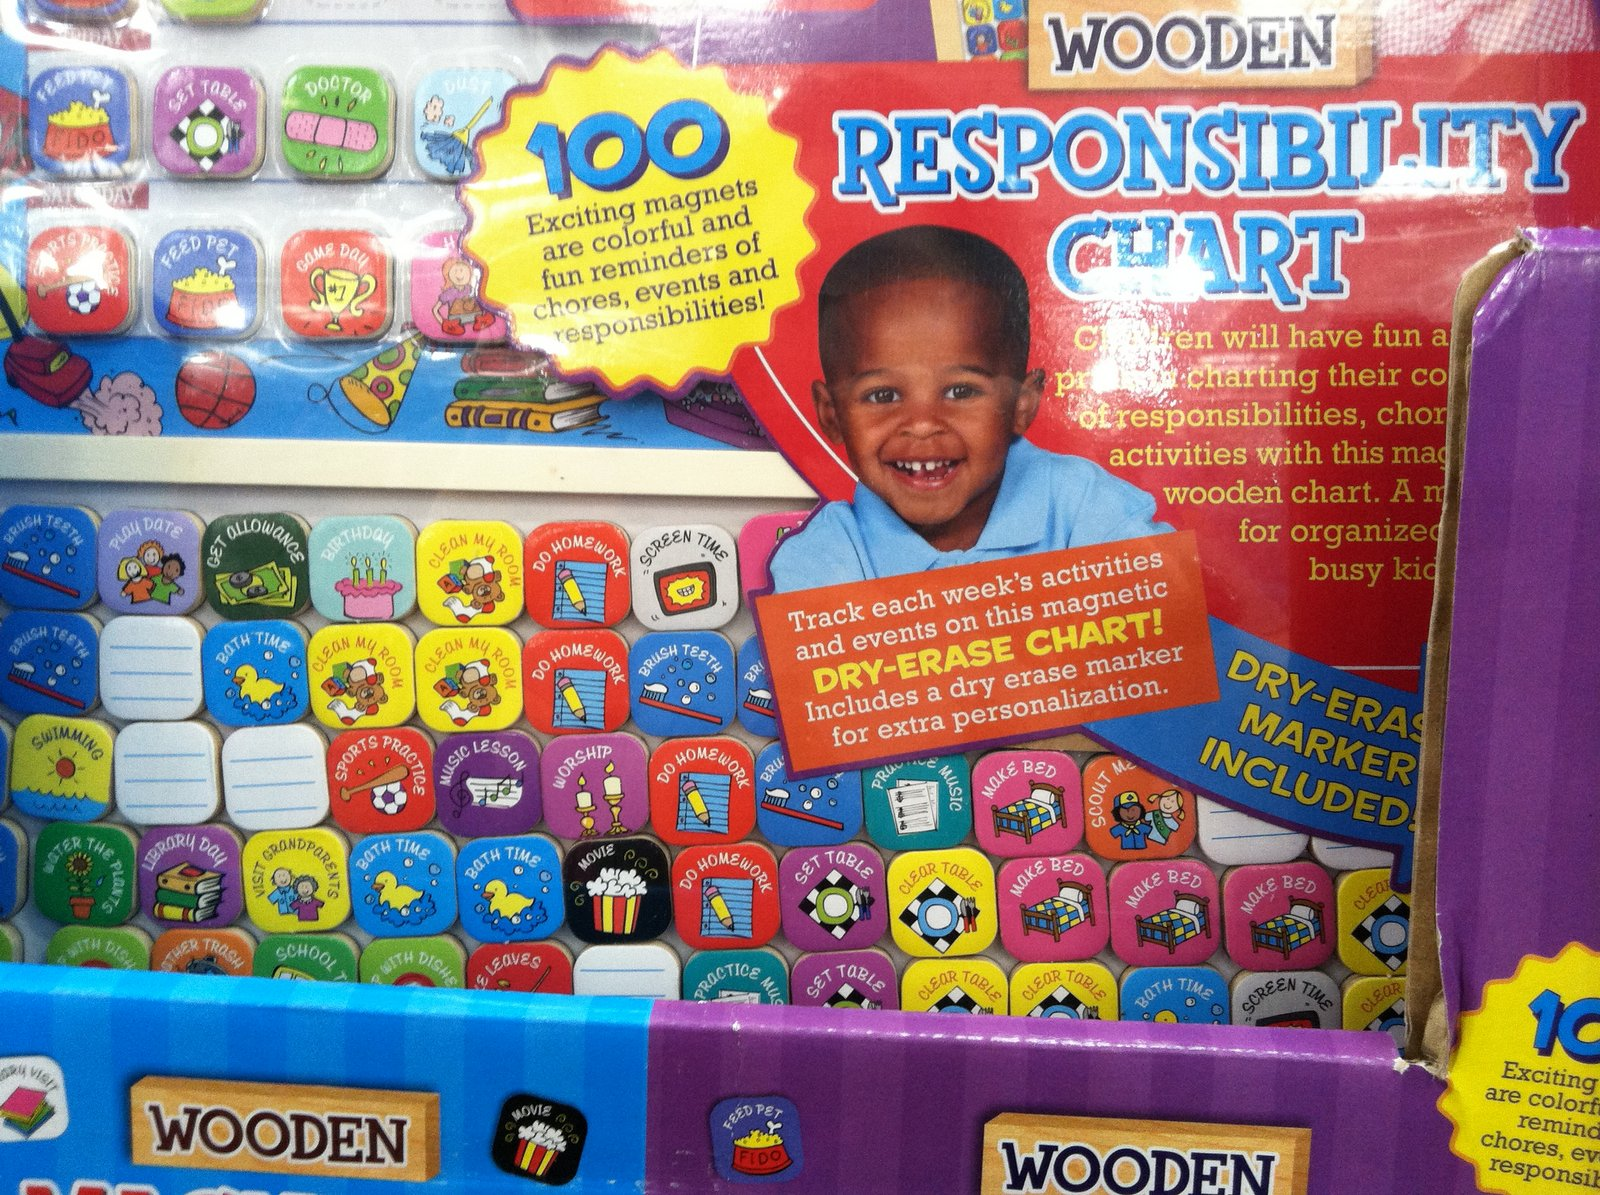 Ot related gift ideas at costco ideas at costco miss awesomeness - Costco toys for kids ...